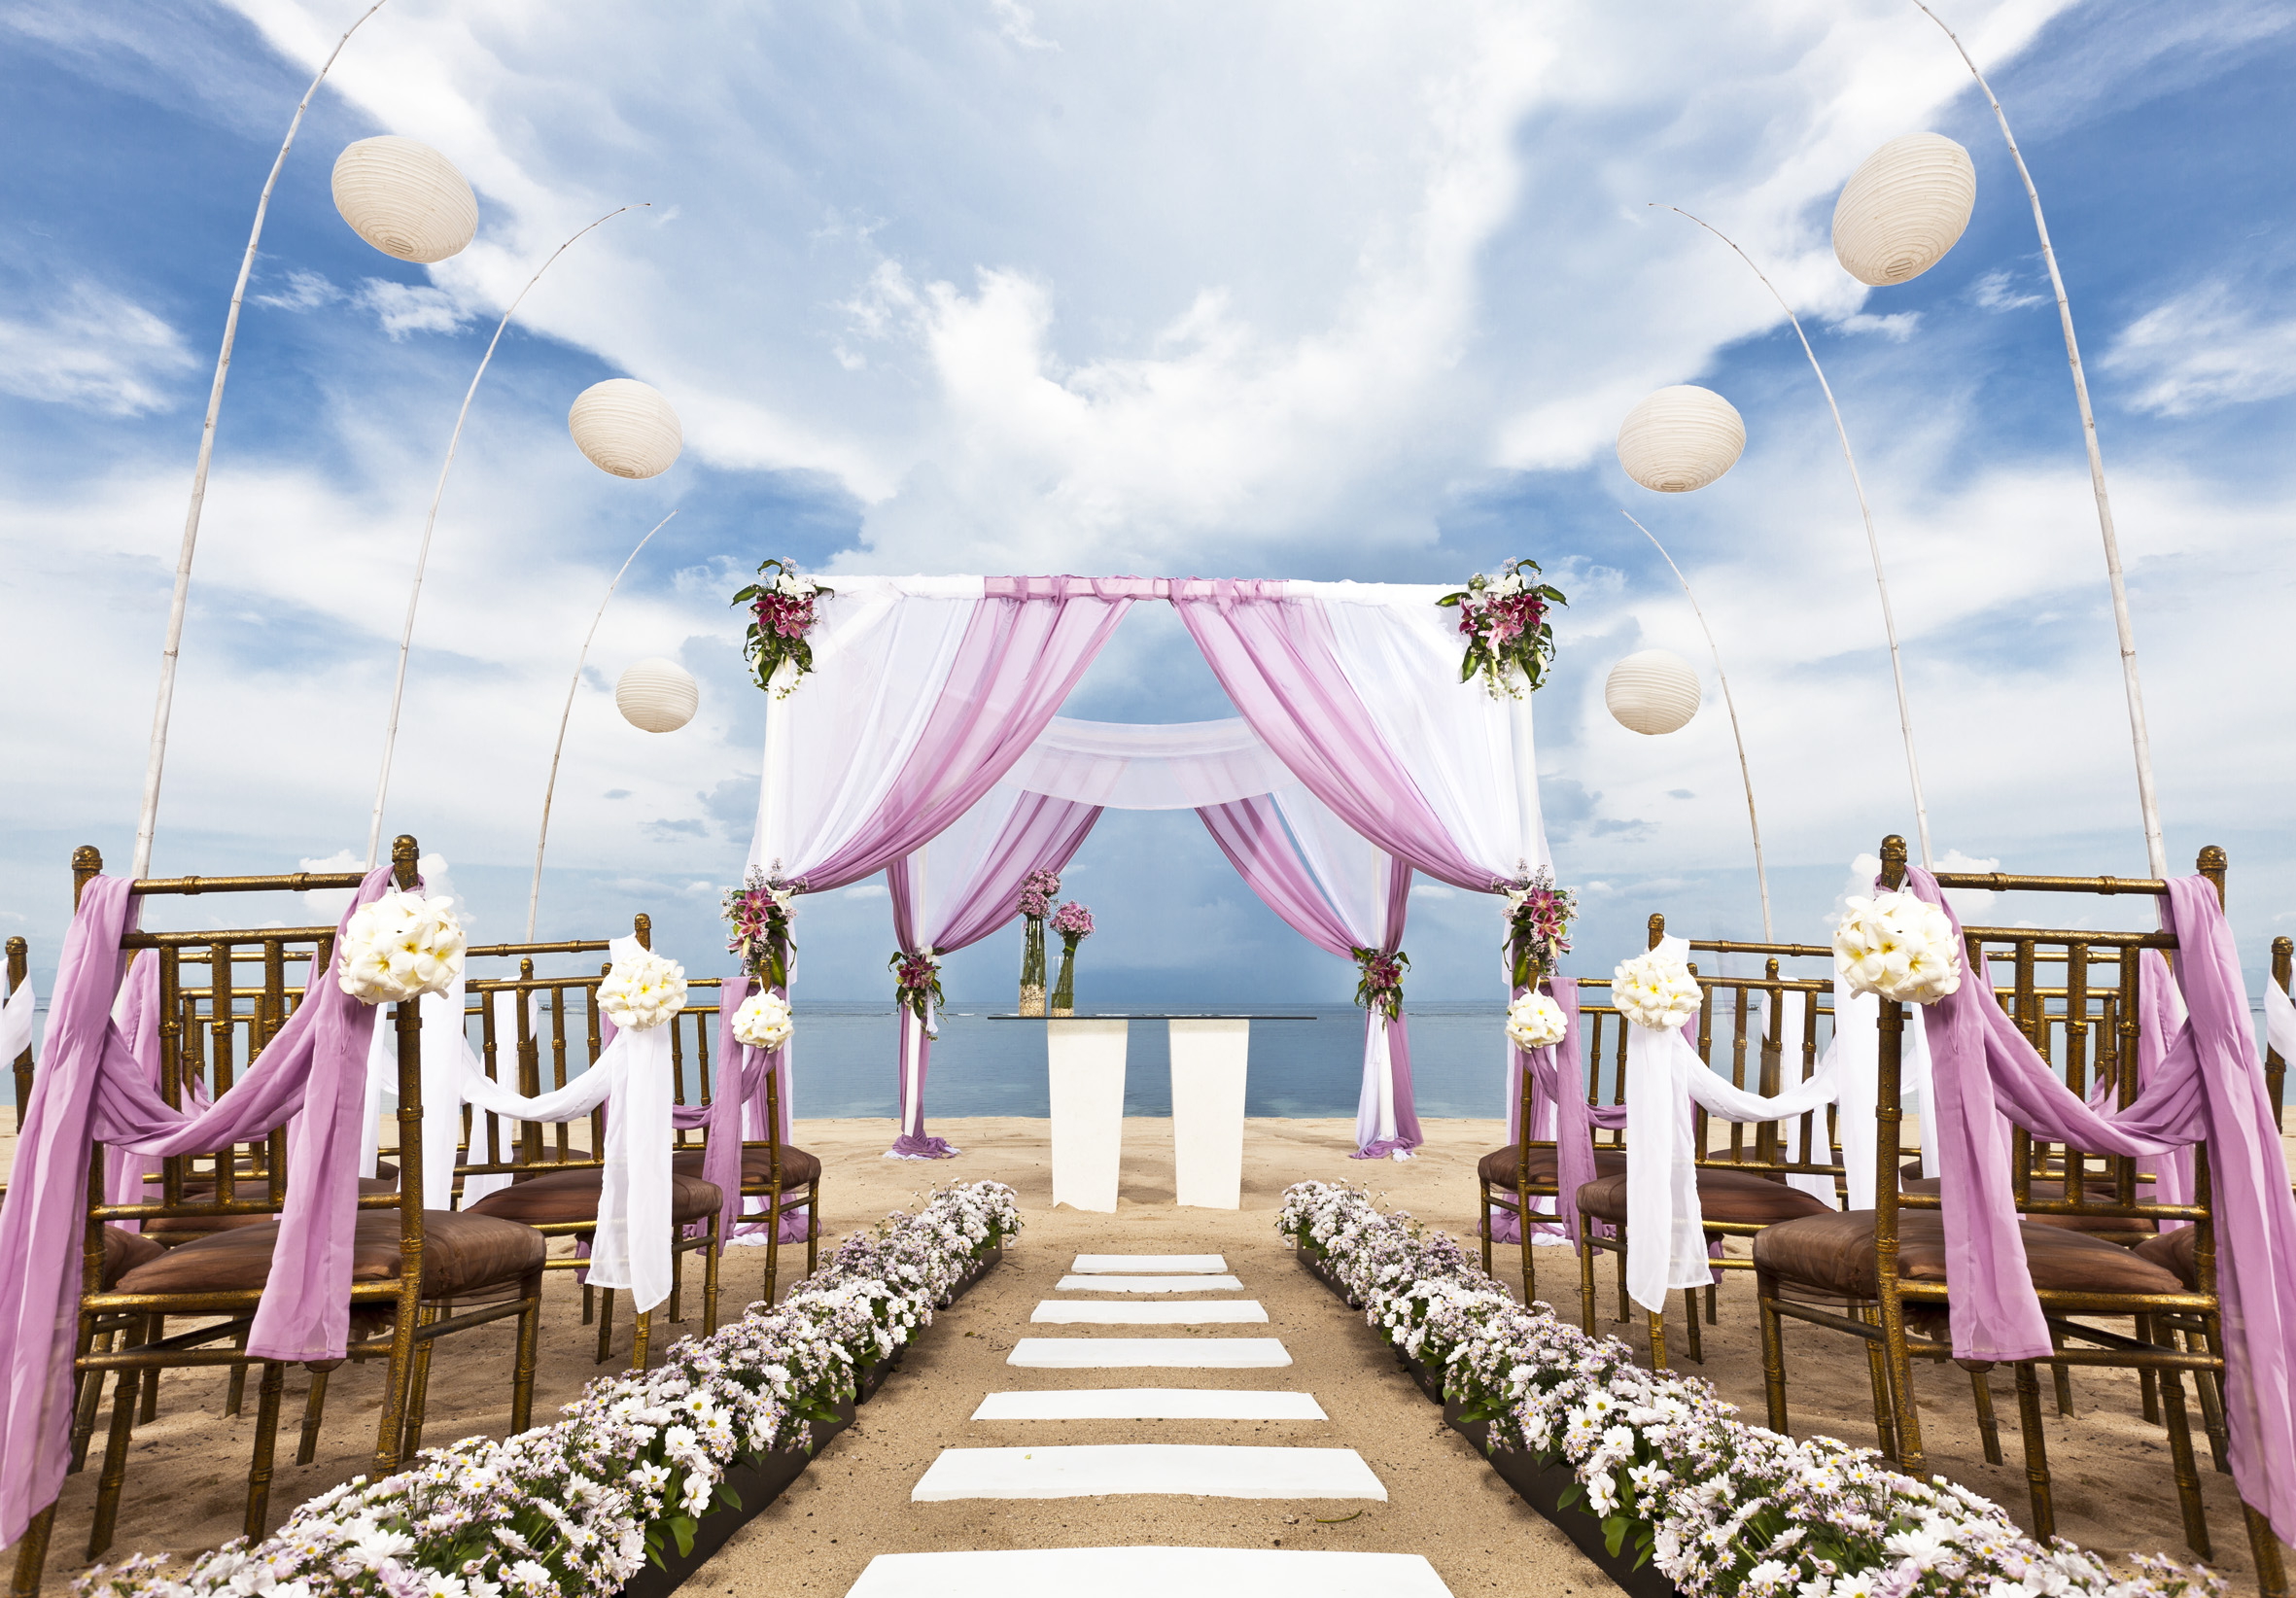 Memorable wedding venues and locations shaadiwala commercial photography junglespirit Image collections